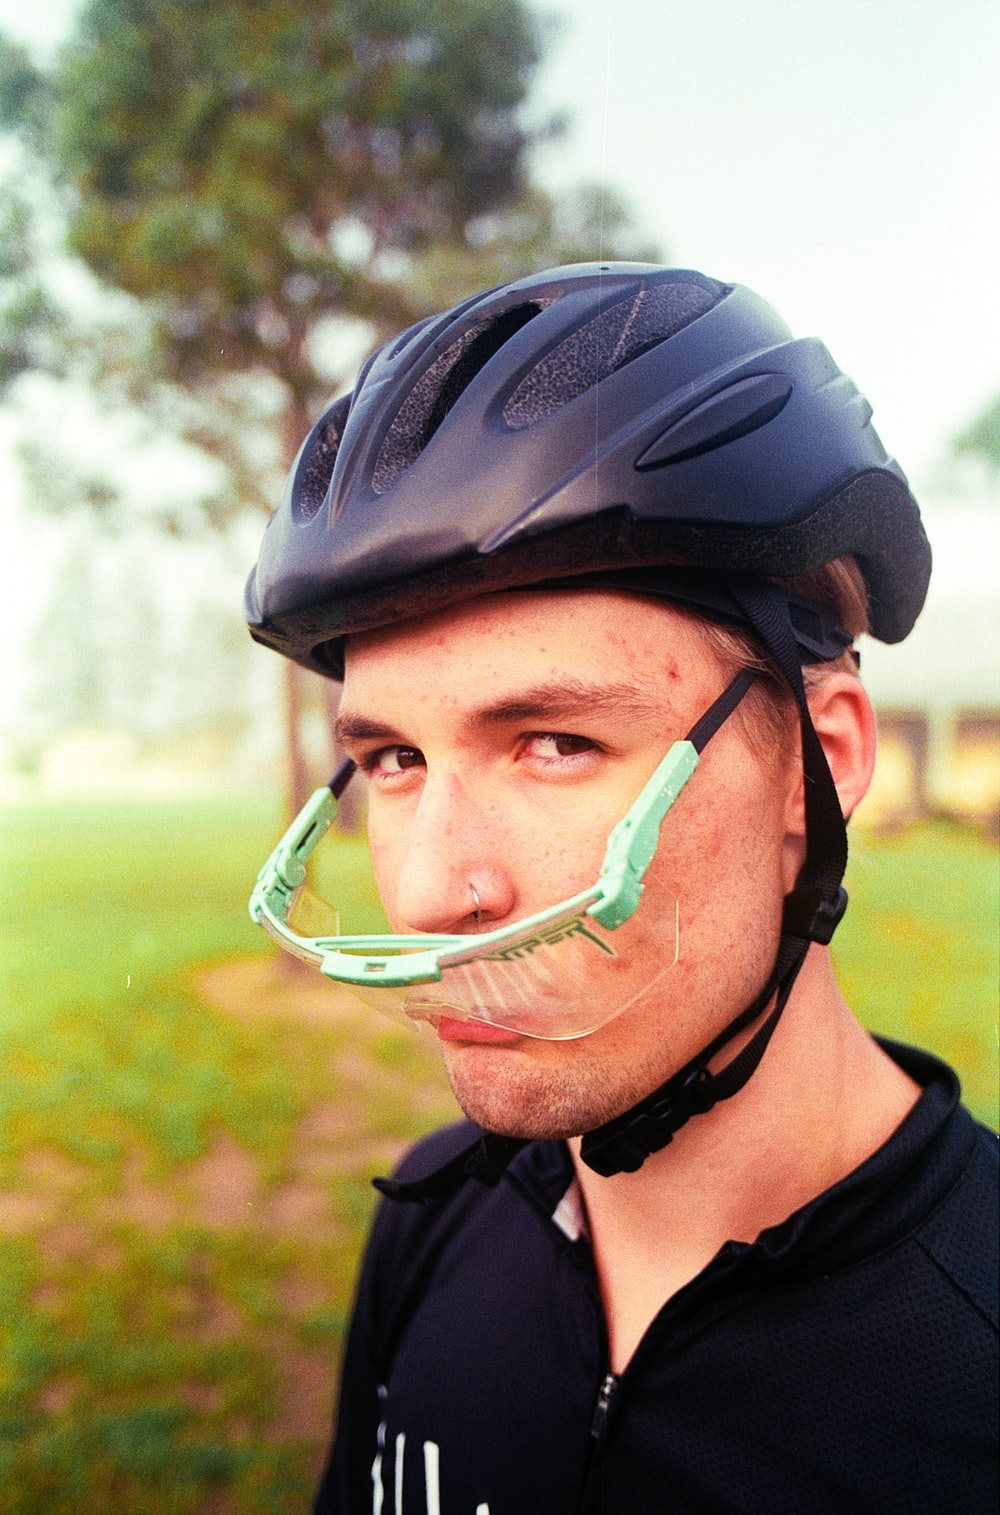 man wearing black bicycle helmet